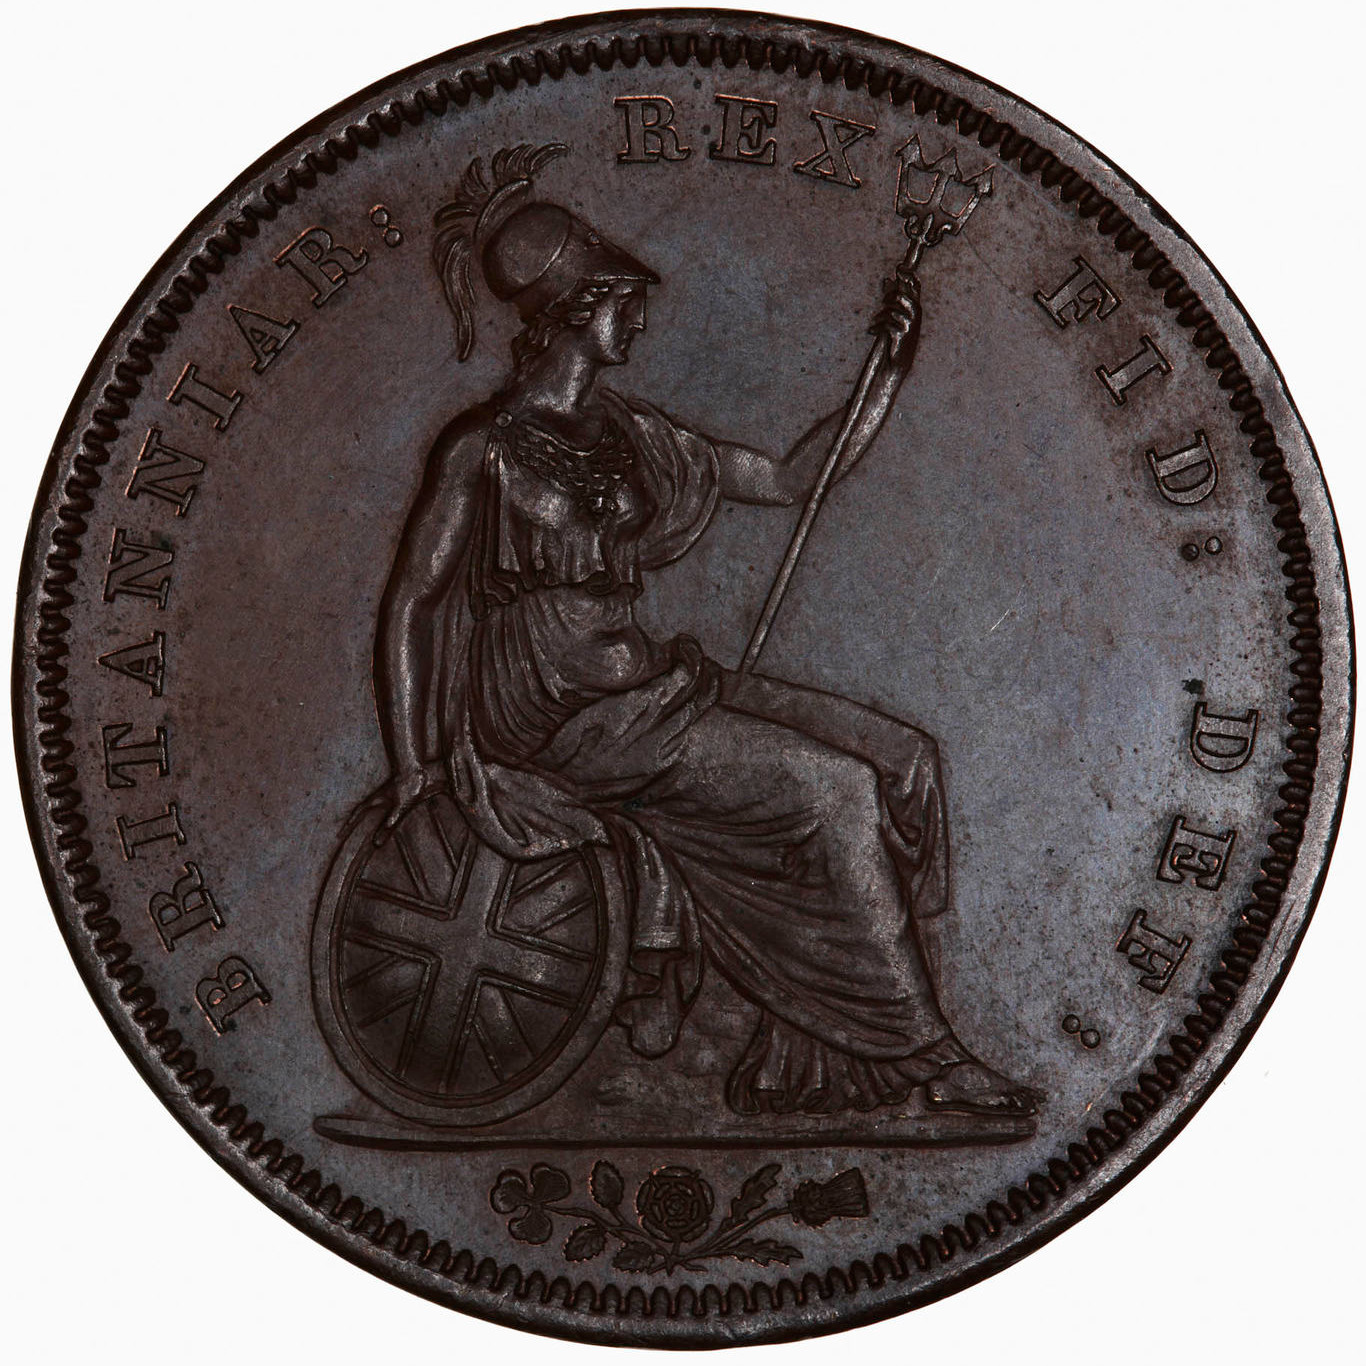 Penny 1826: Photo Proof Coin - Penny, George IV, Great Britain, 1826